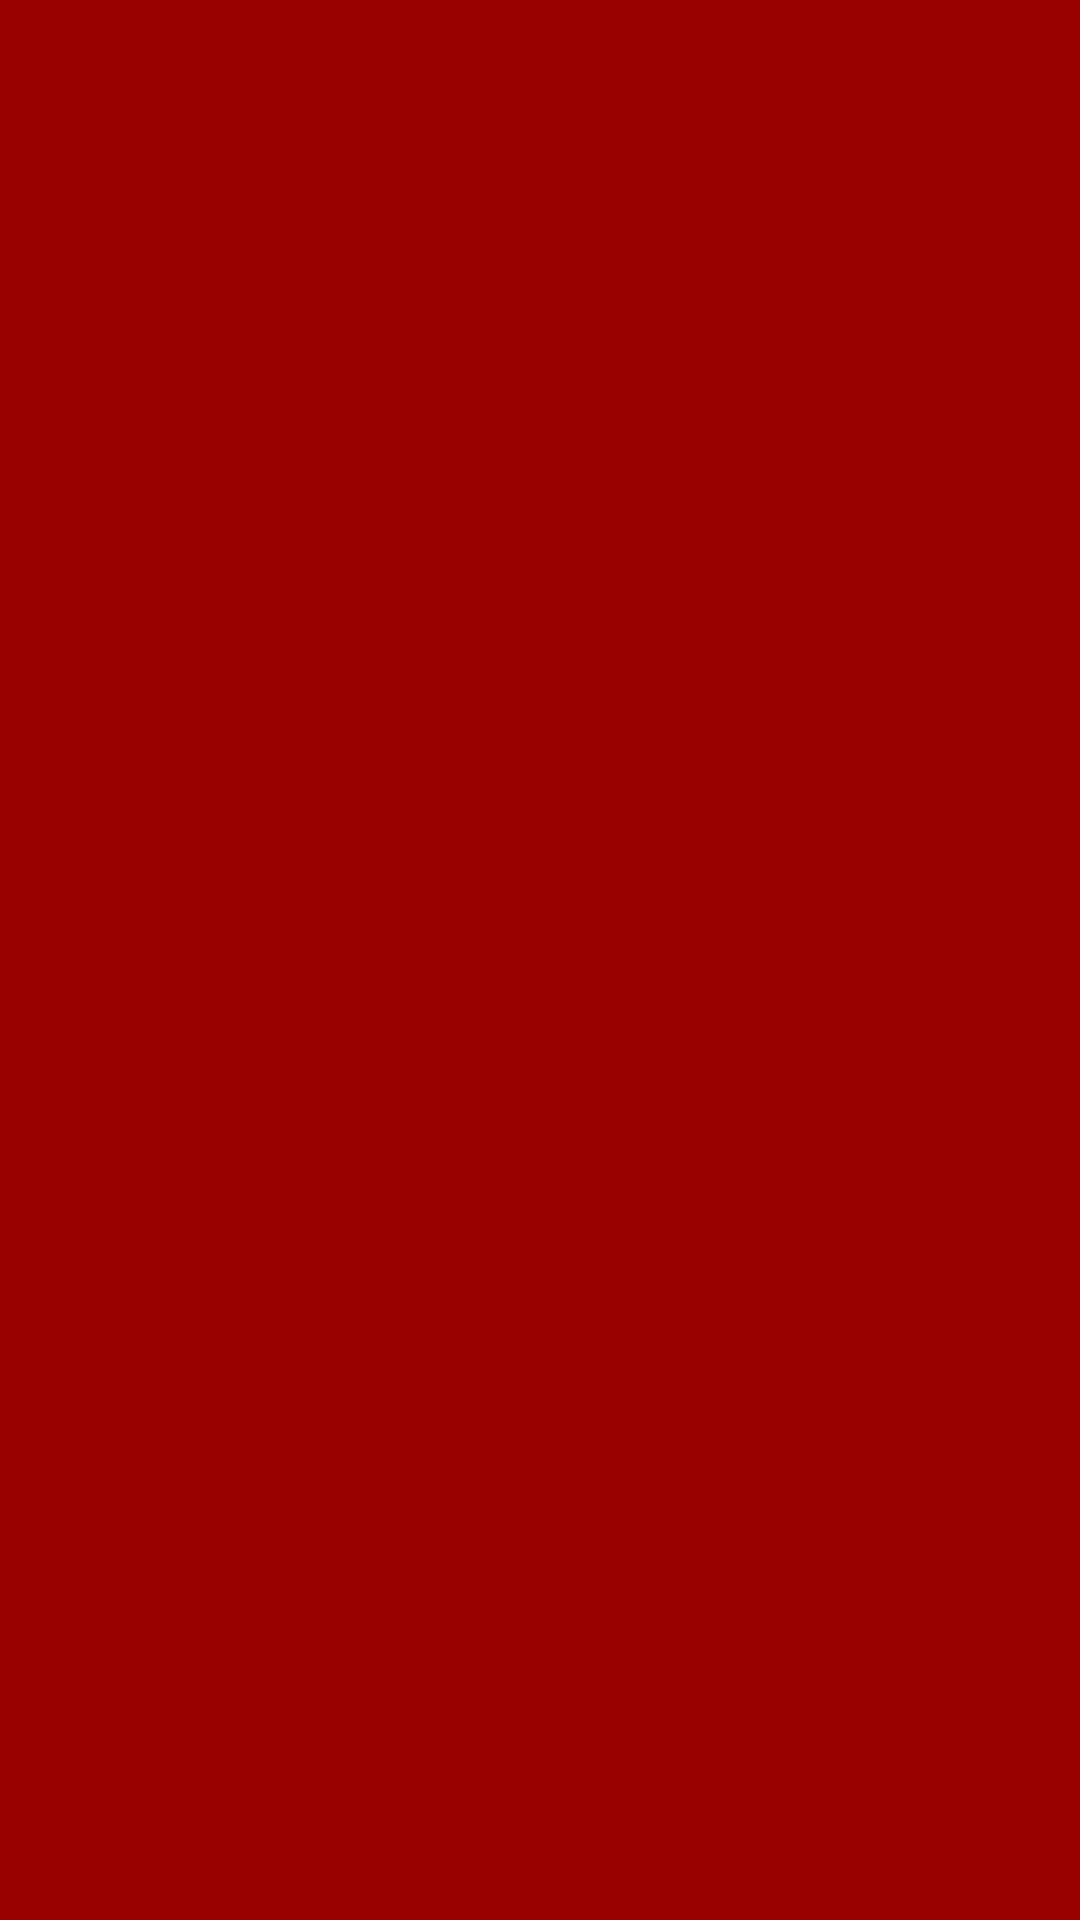 1080x1920 OU Crimson Red Solid Color Background